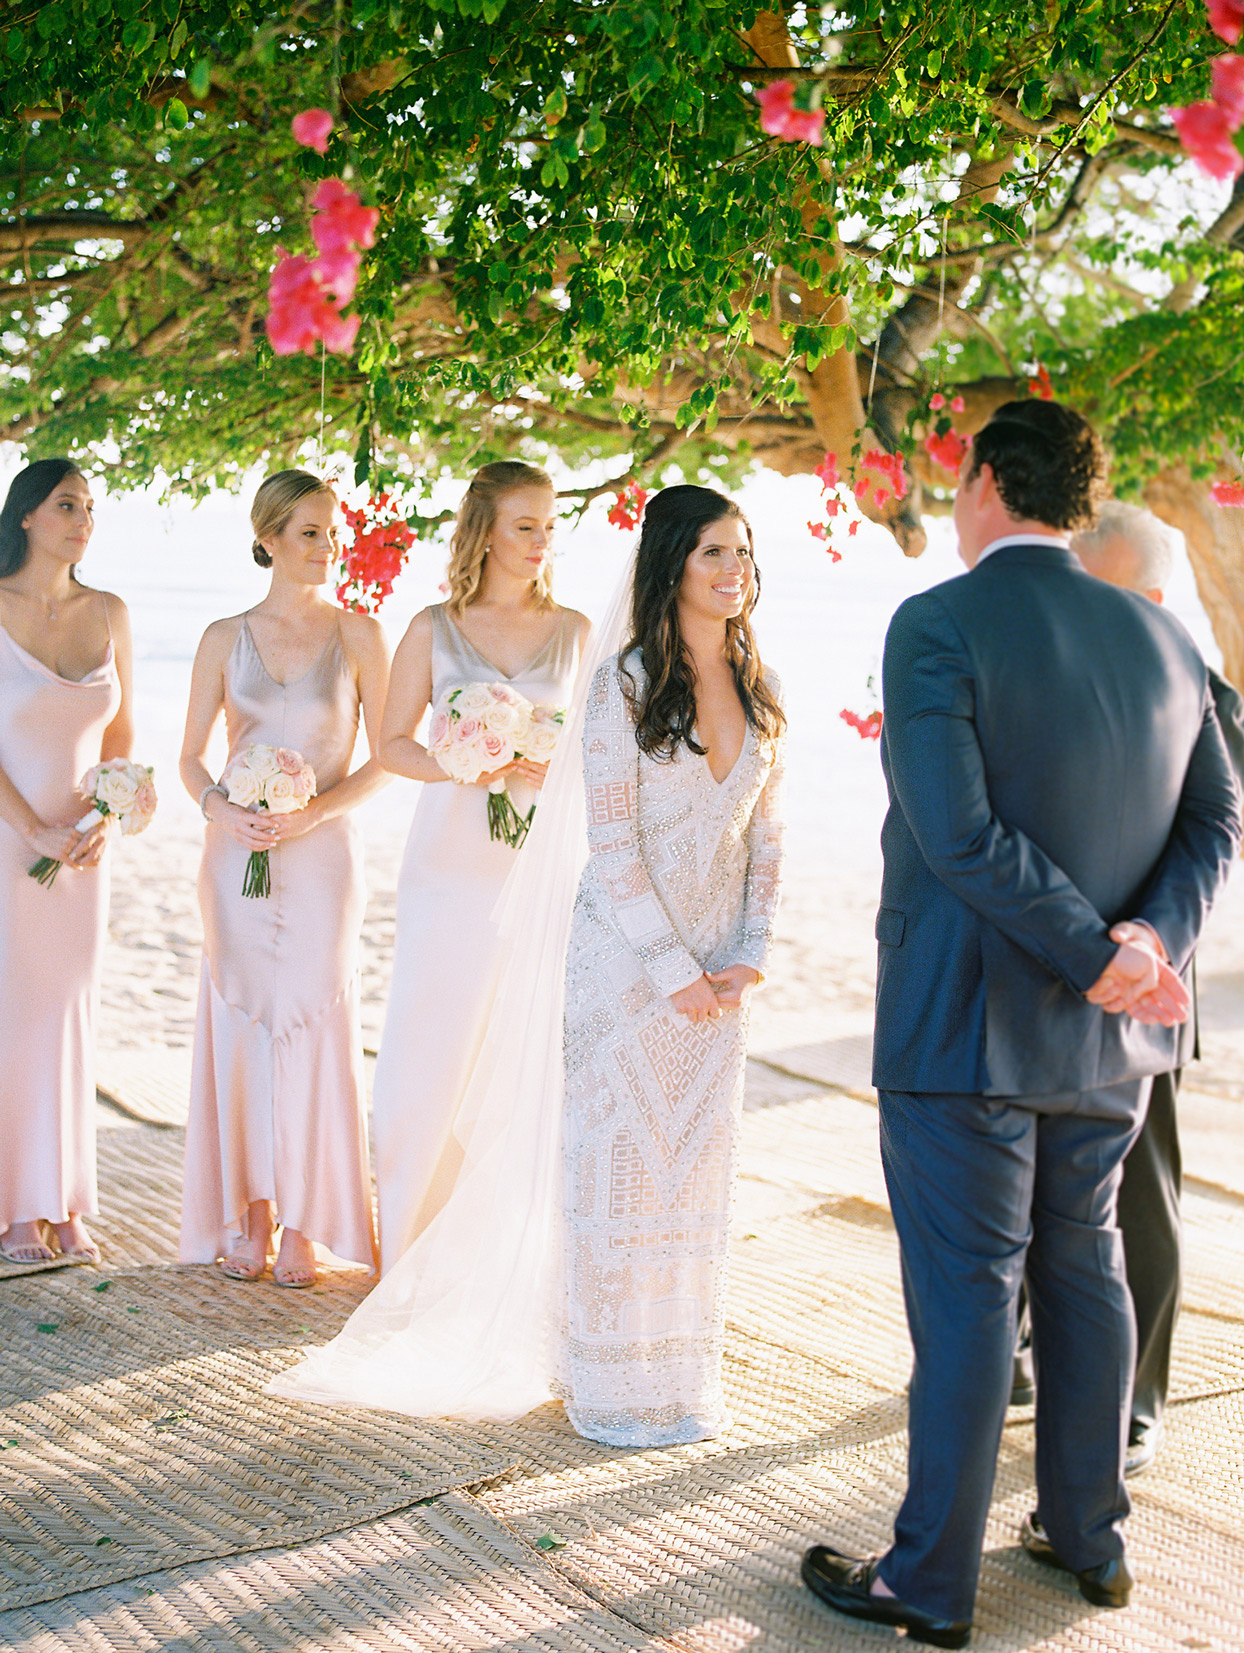 bride and groom exchanging wedding vows at outdoor ceremony